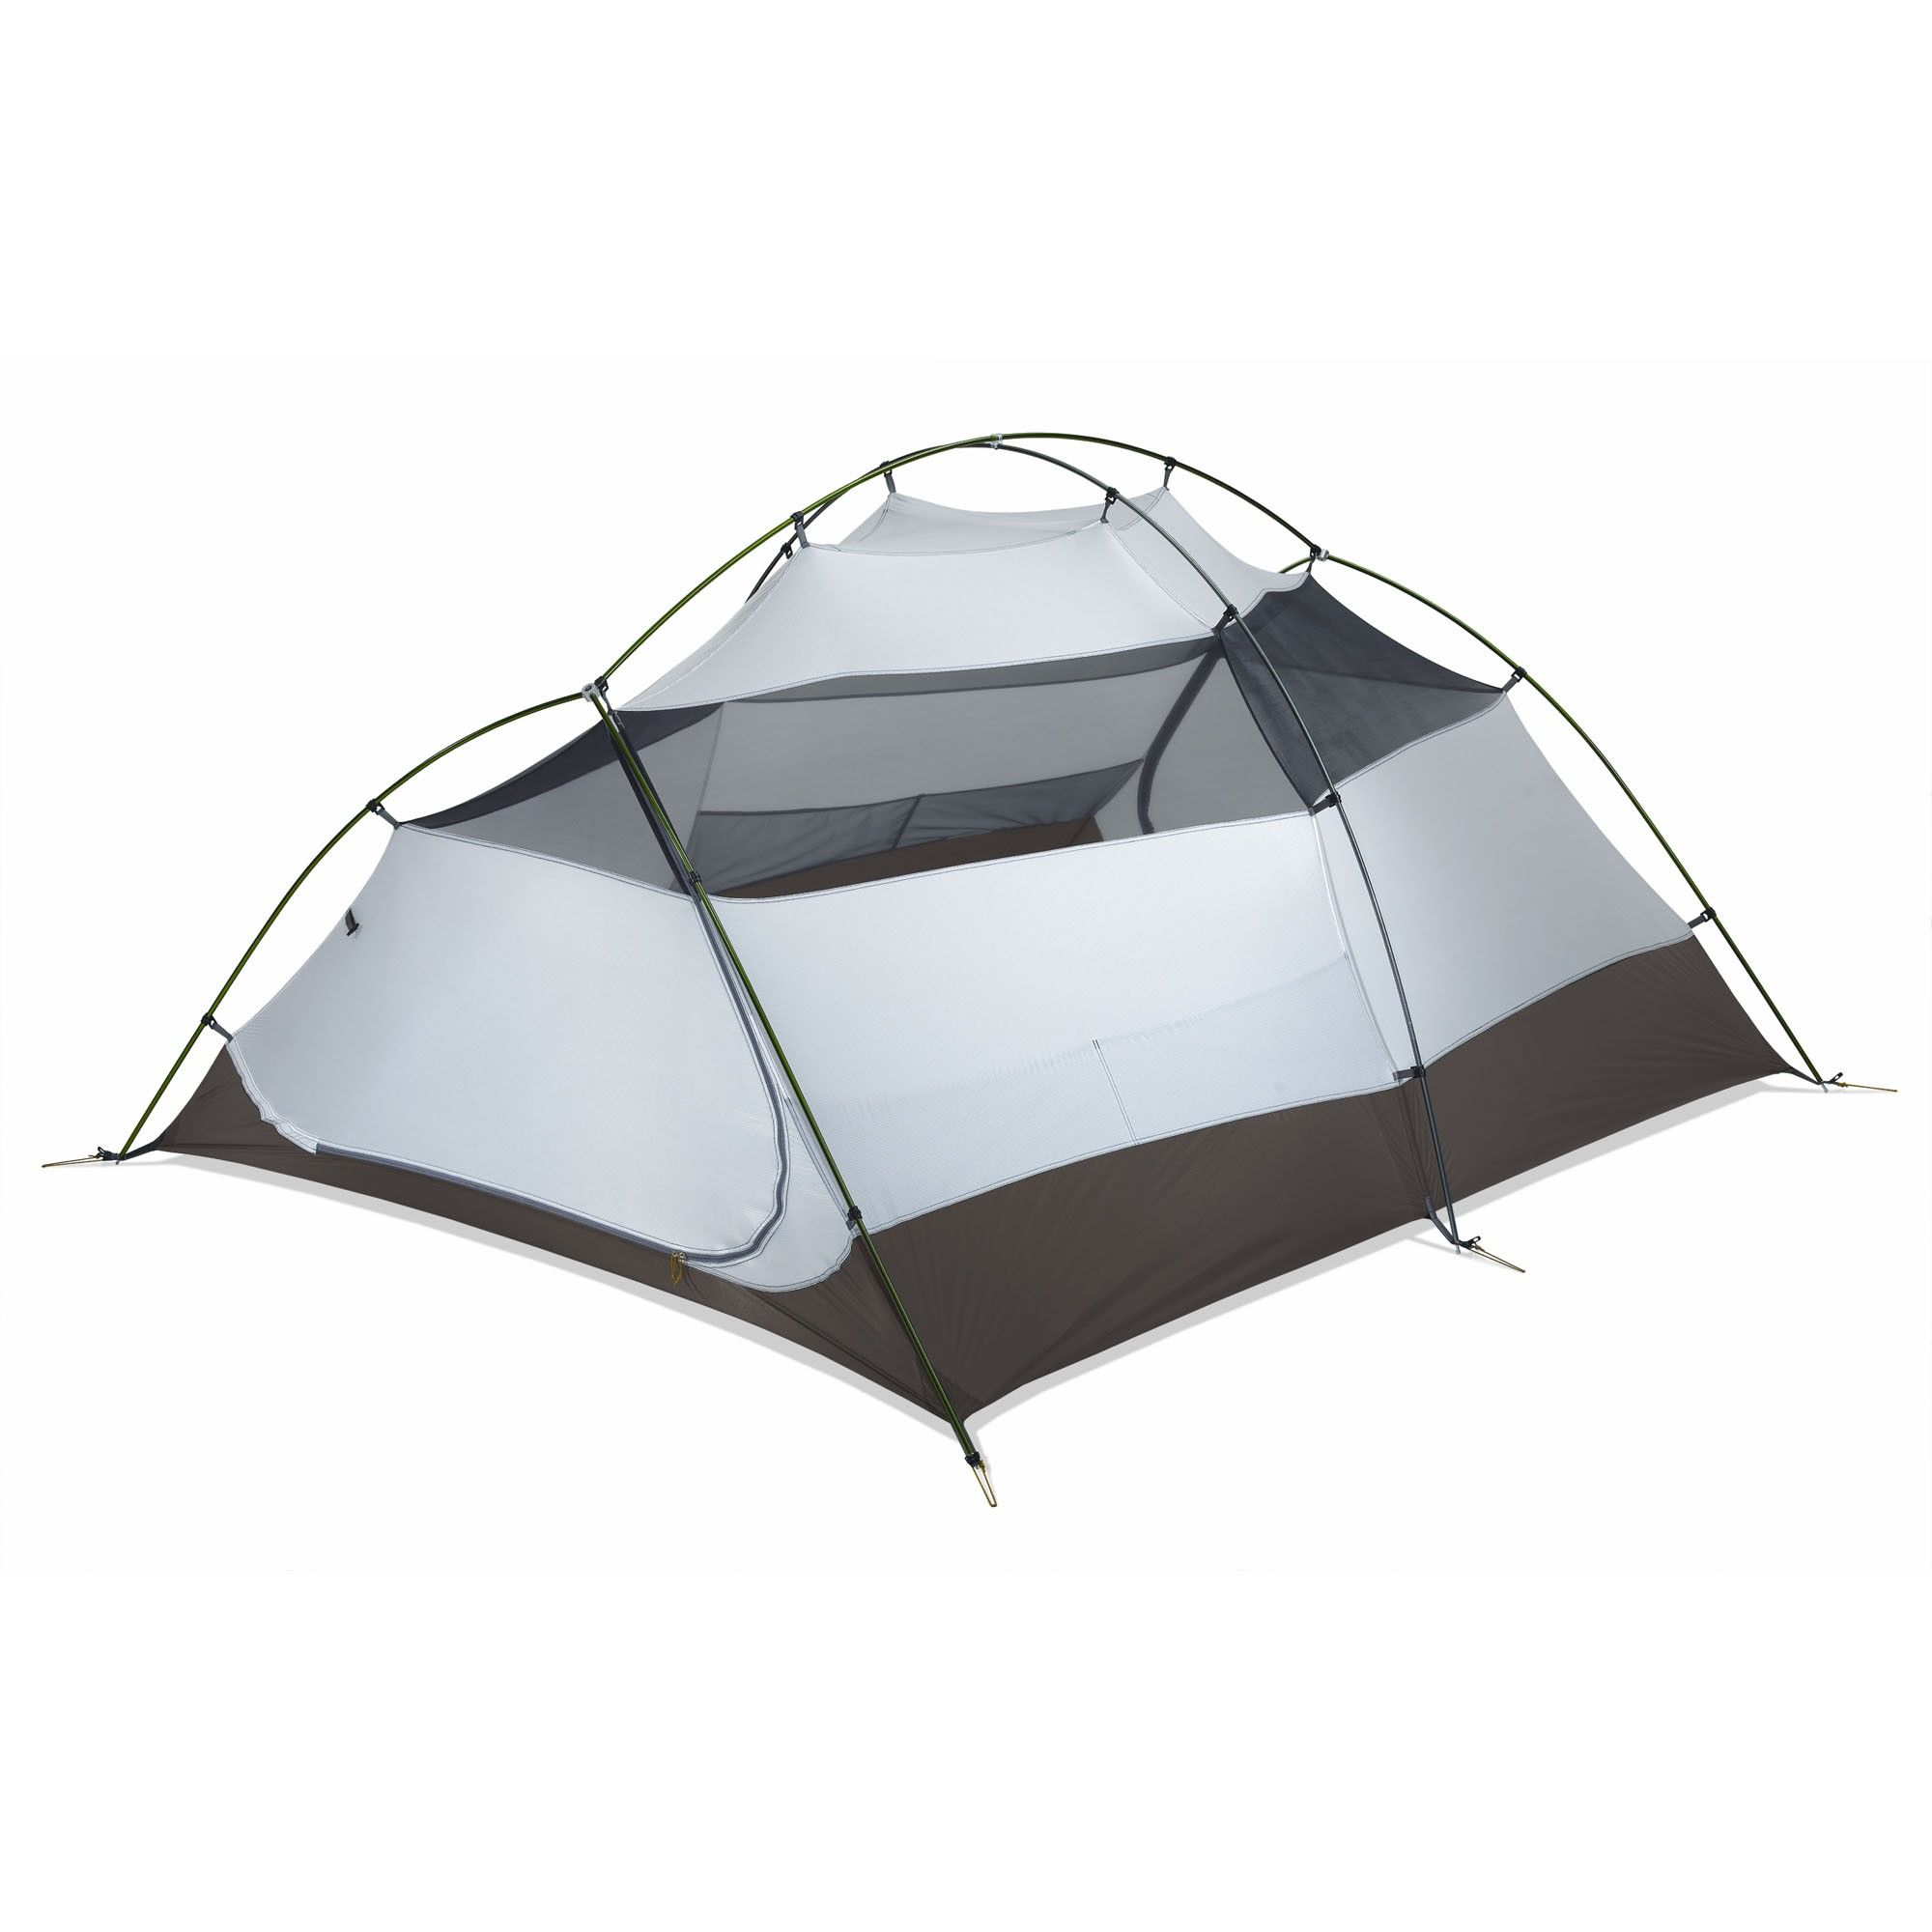 Mrs Holler Three Person Tent Tent Tent Camping Best Tents For Camping